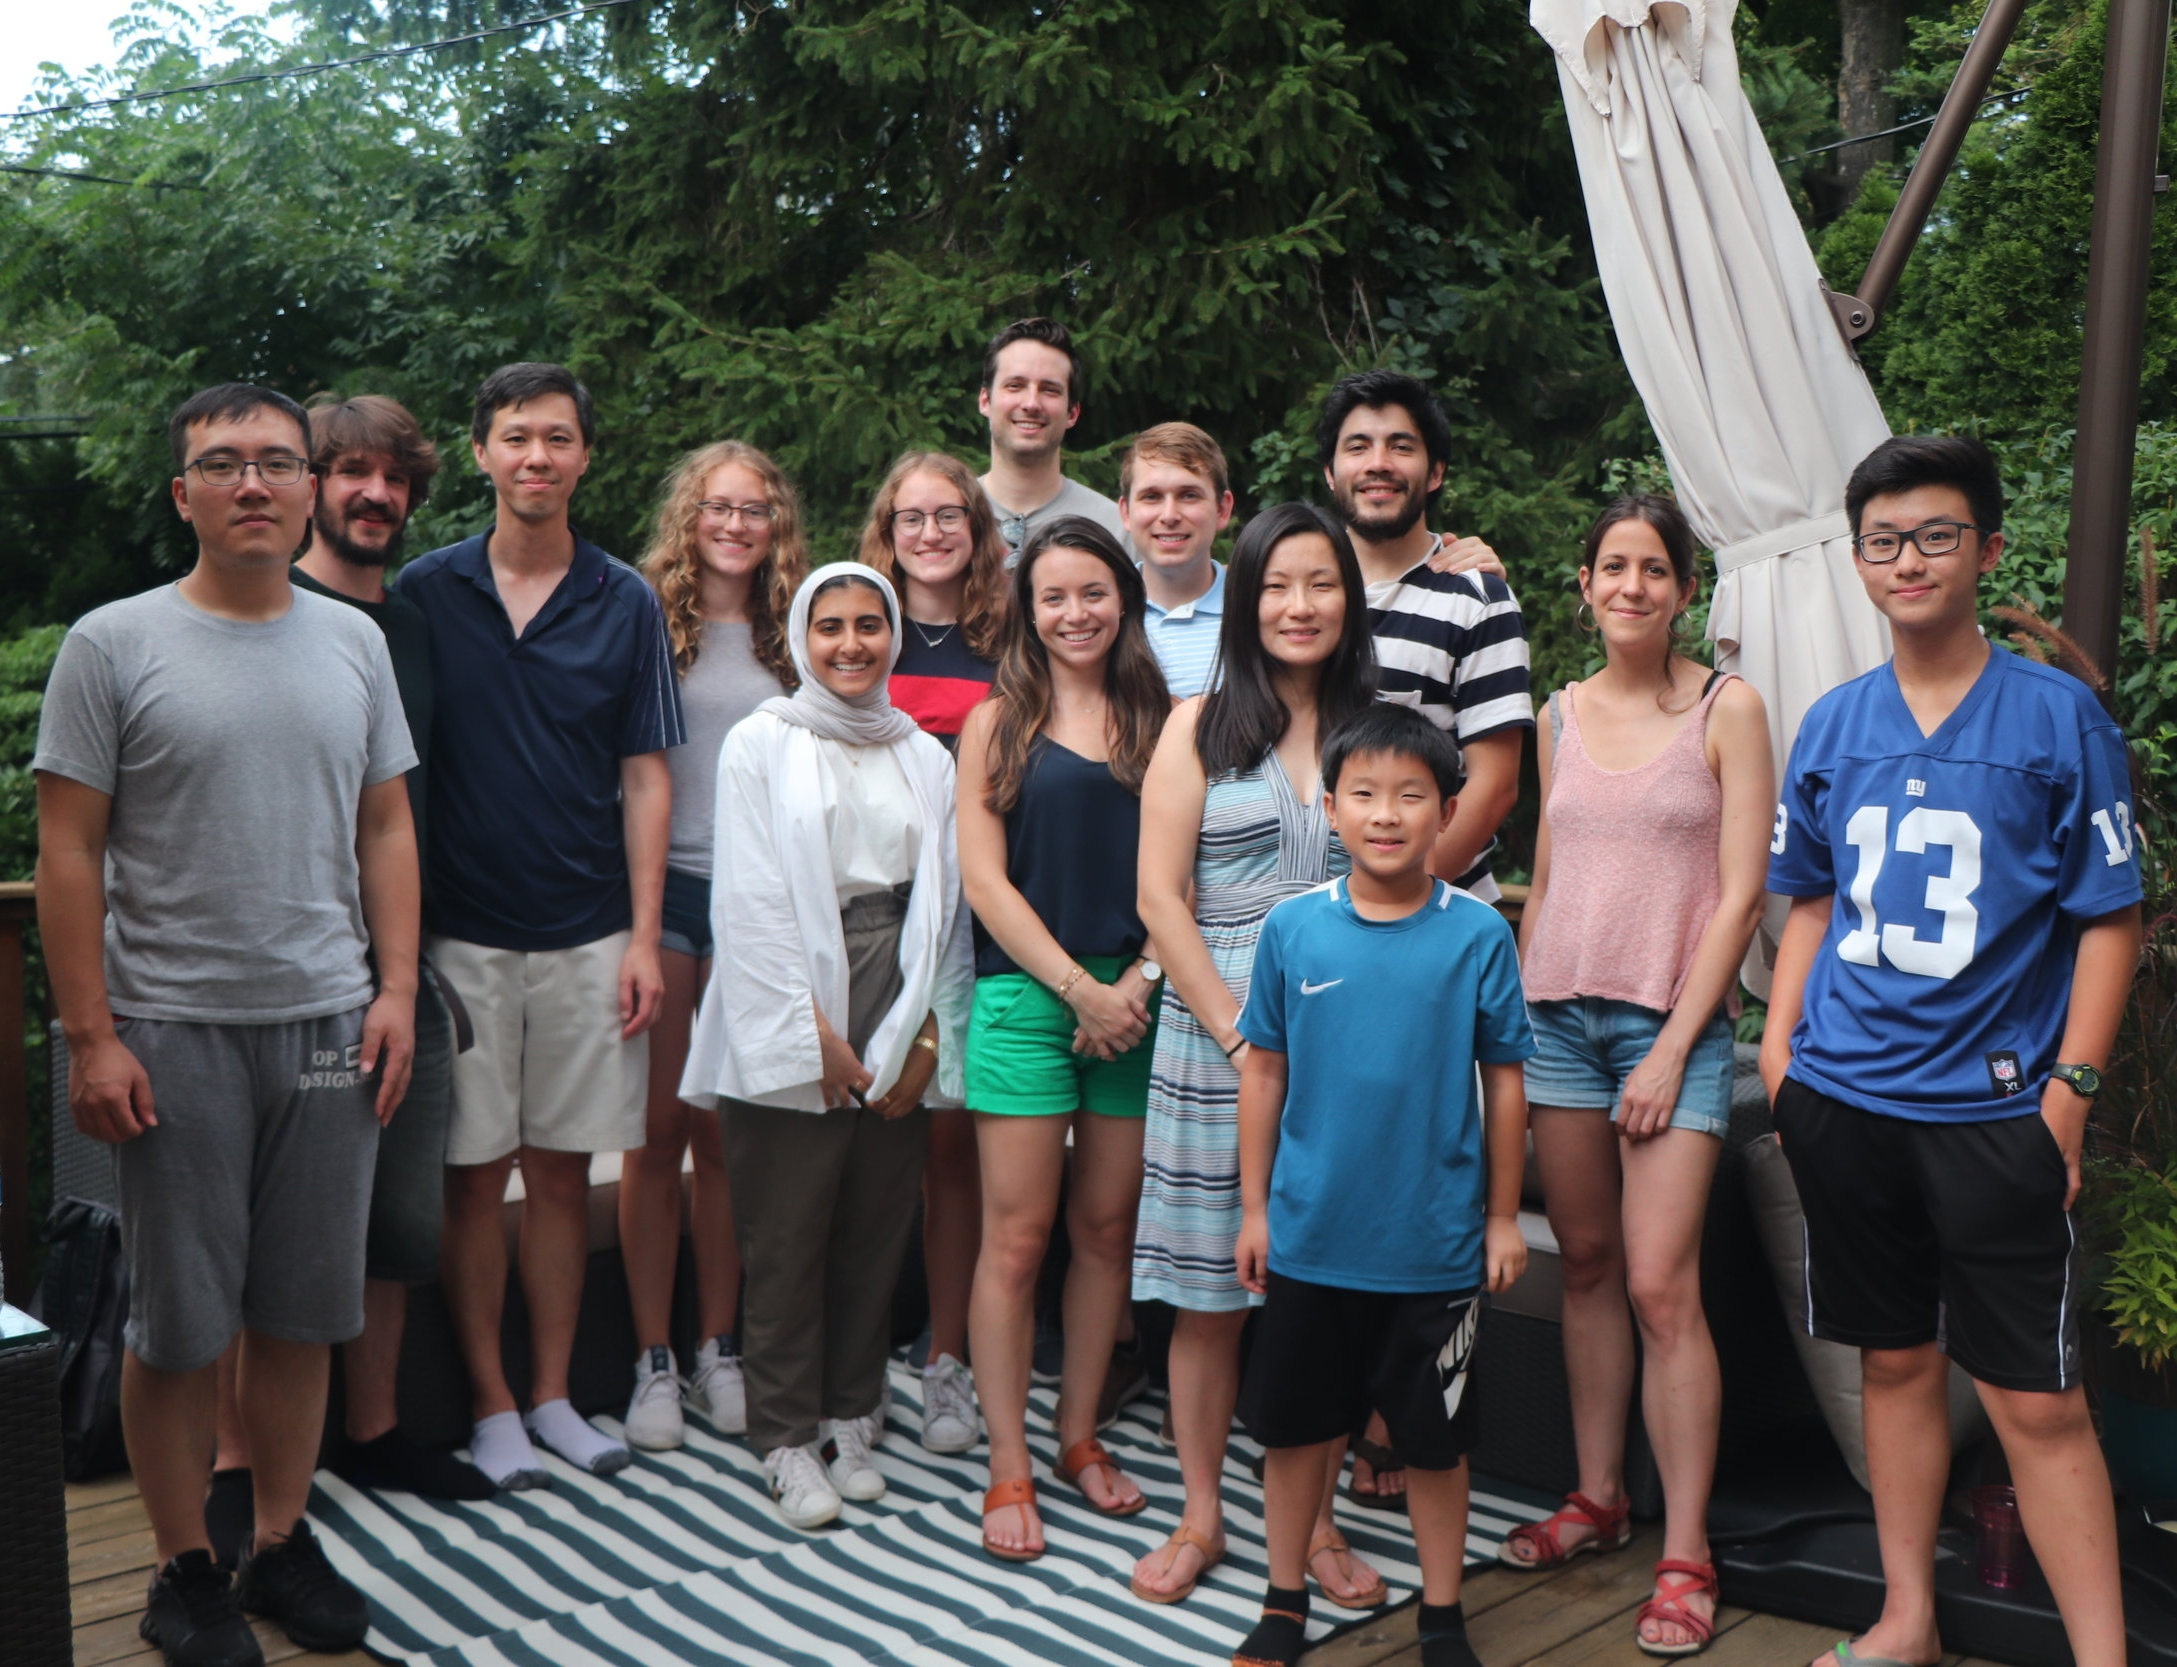 2018 - 2nd Annual Lab BBQ for Lo Lab + family & friends